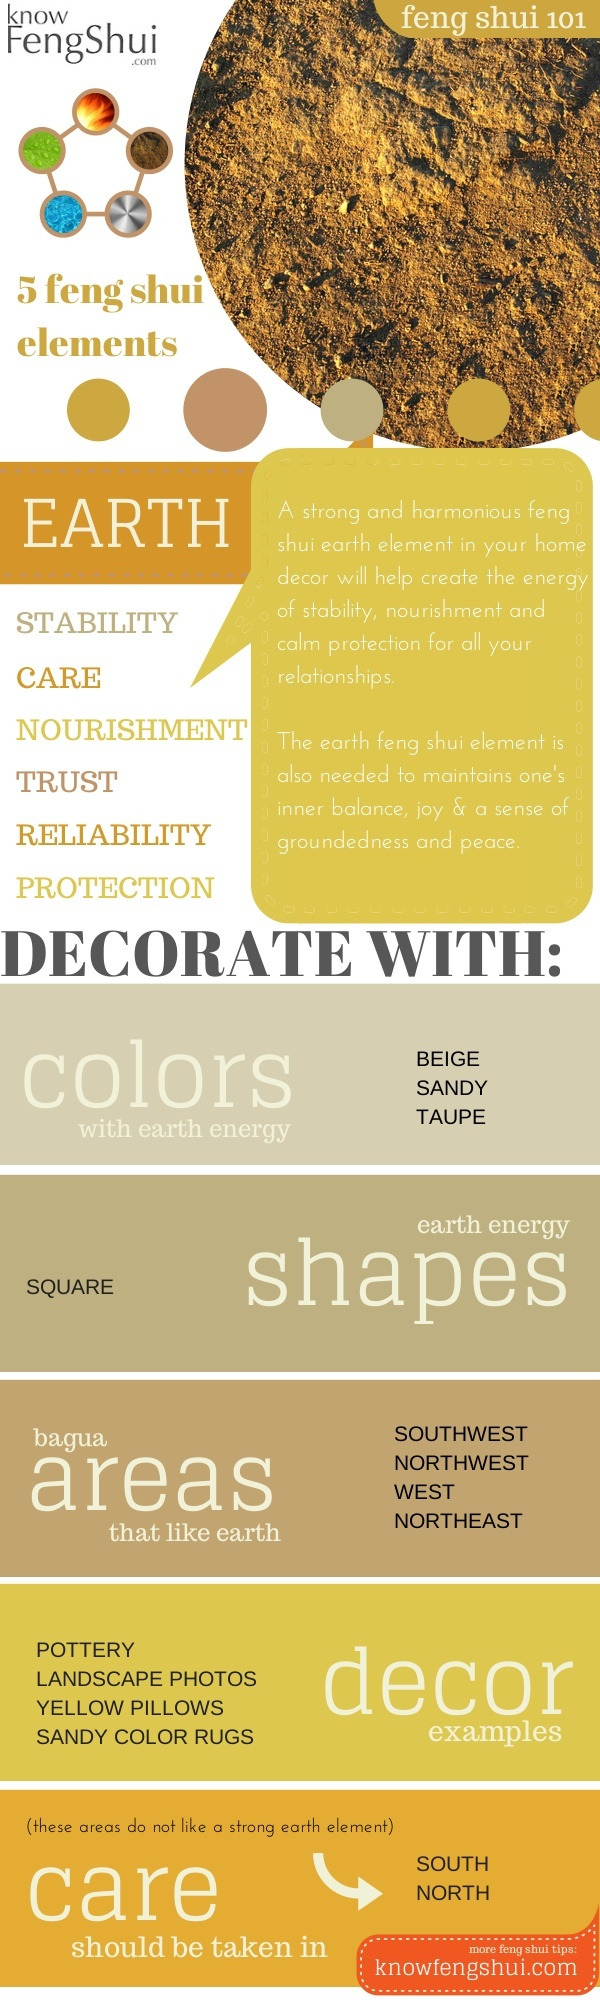 earth feng shui element decor infographic